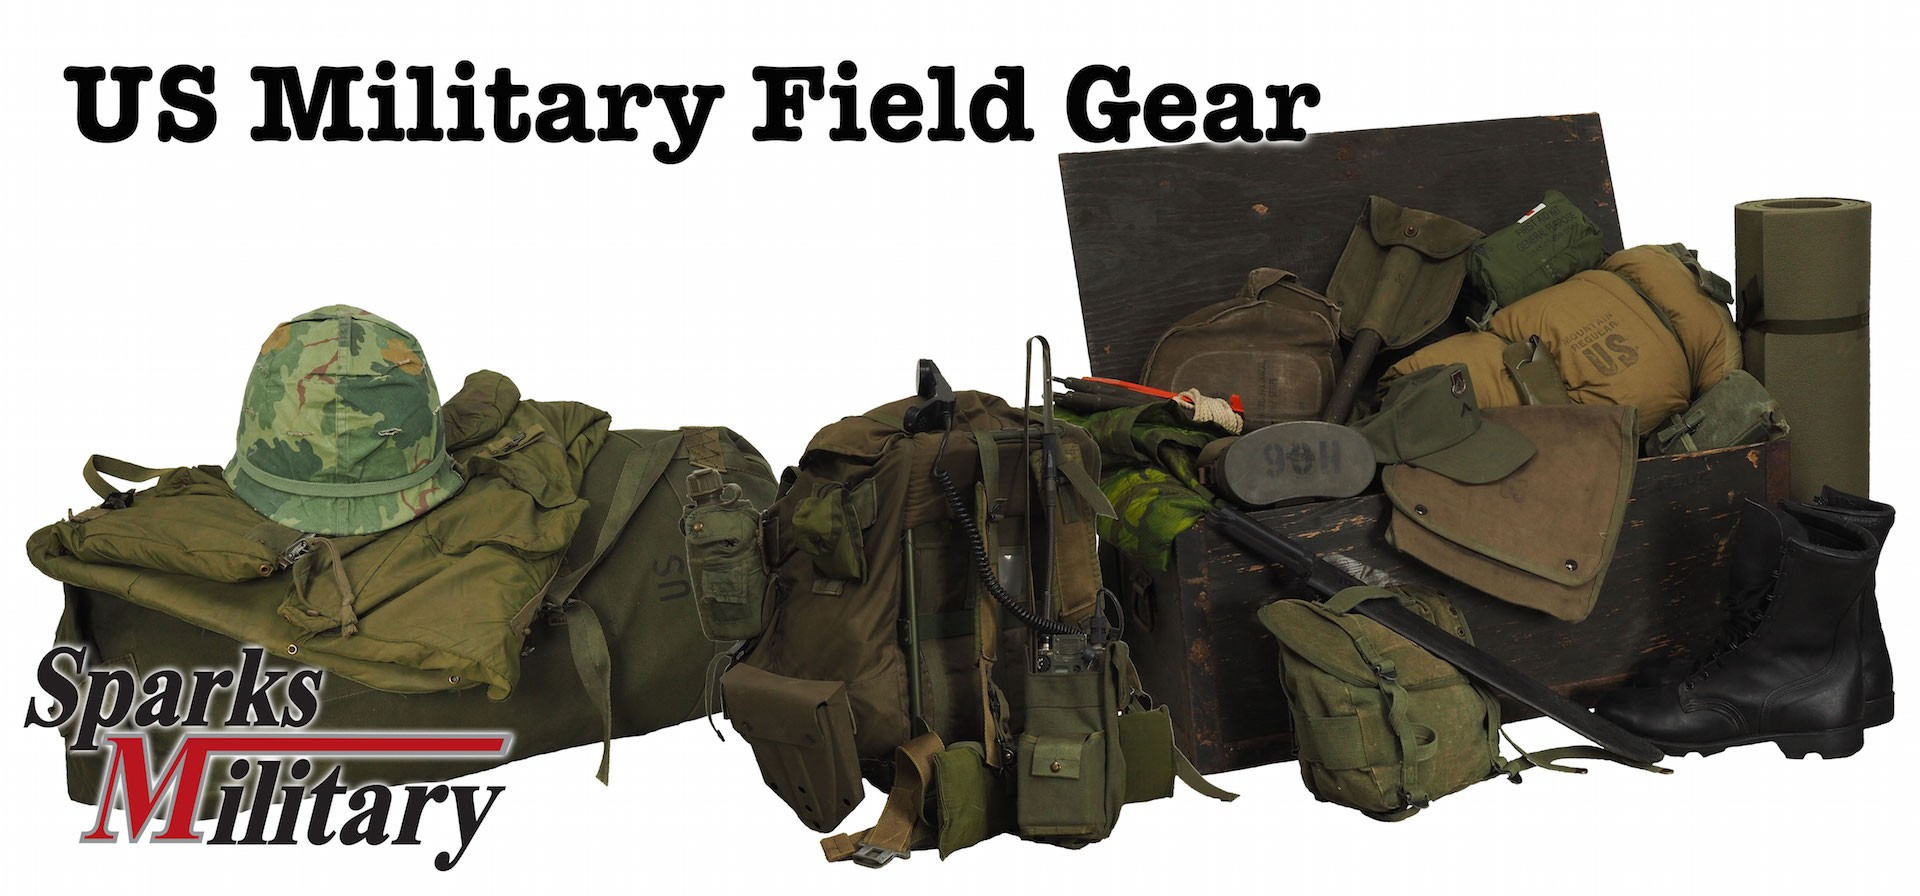 US military equipment, vest and equipment such as backpacks or bags, helmets and sleeping bags and also radio and binoculars